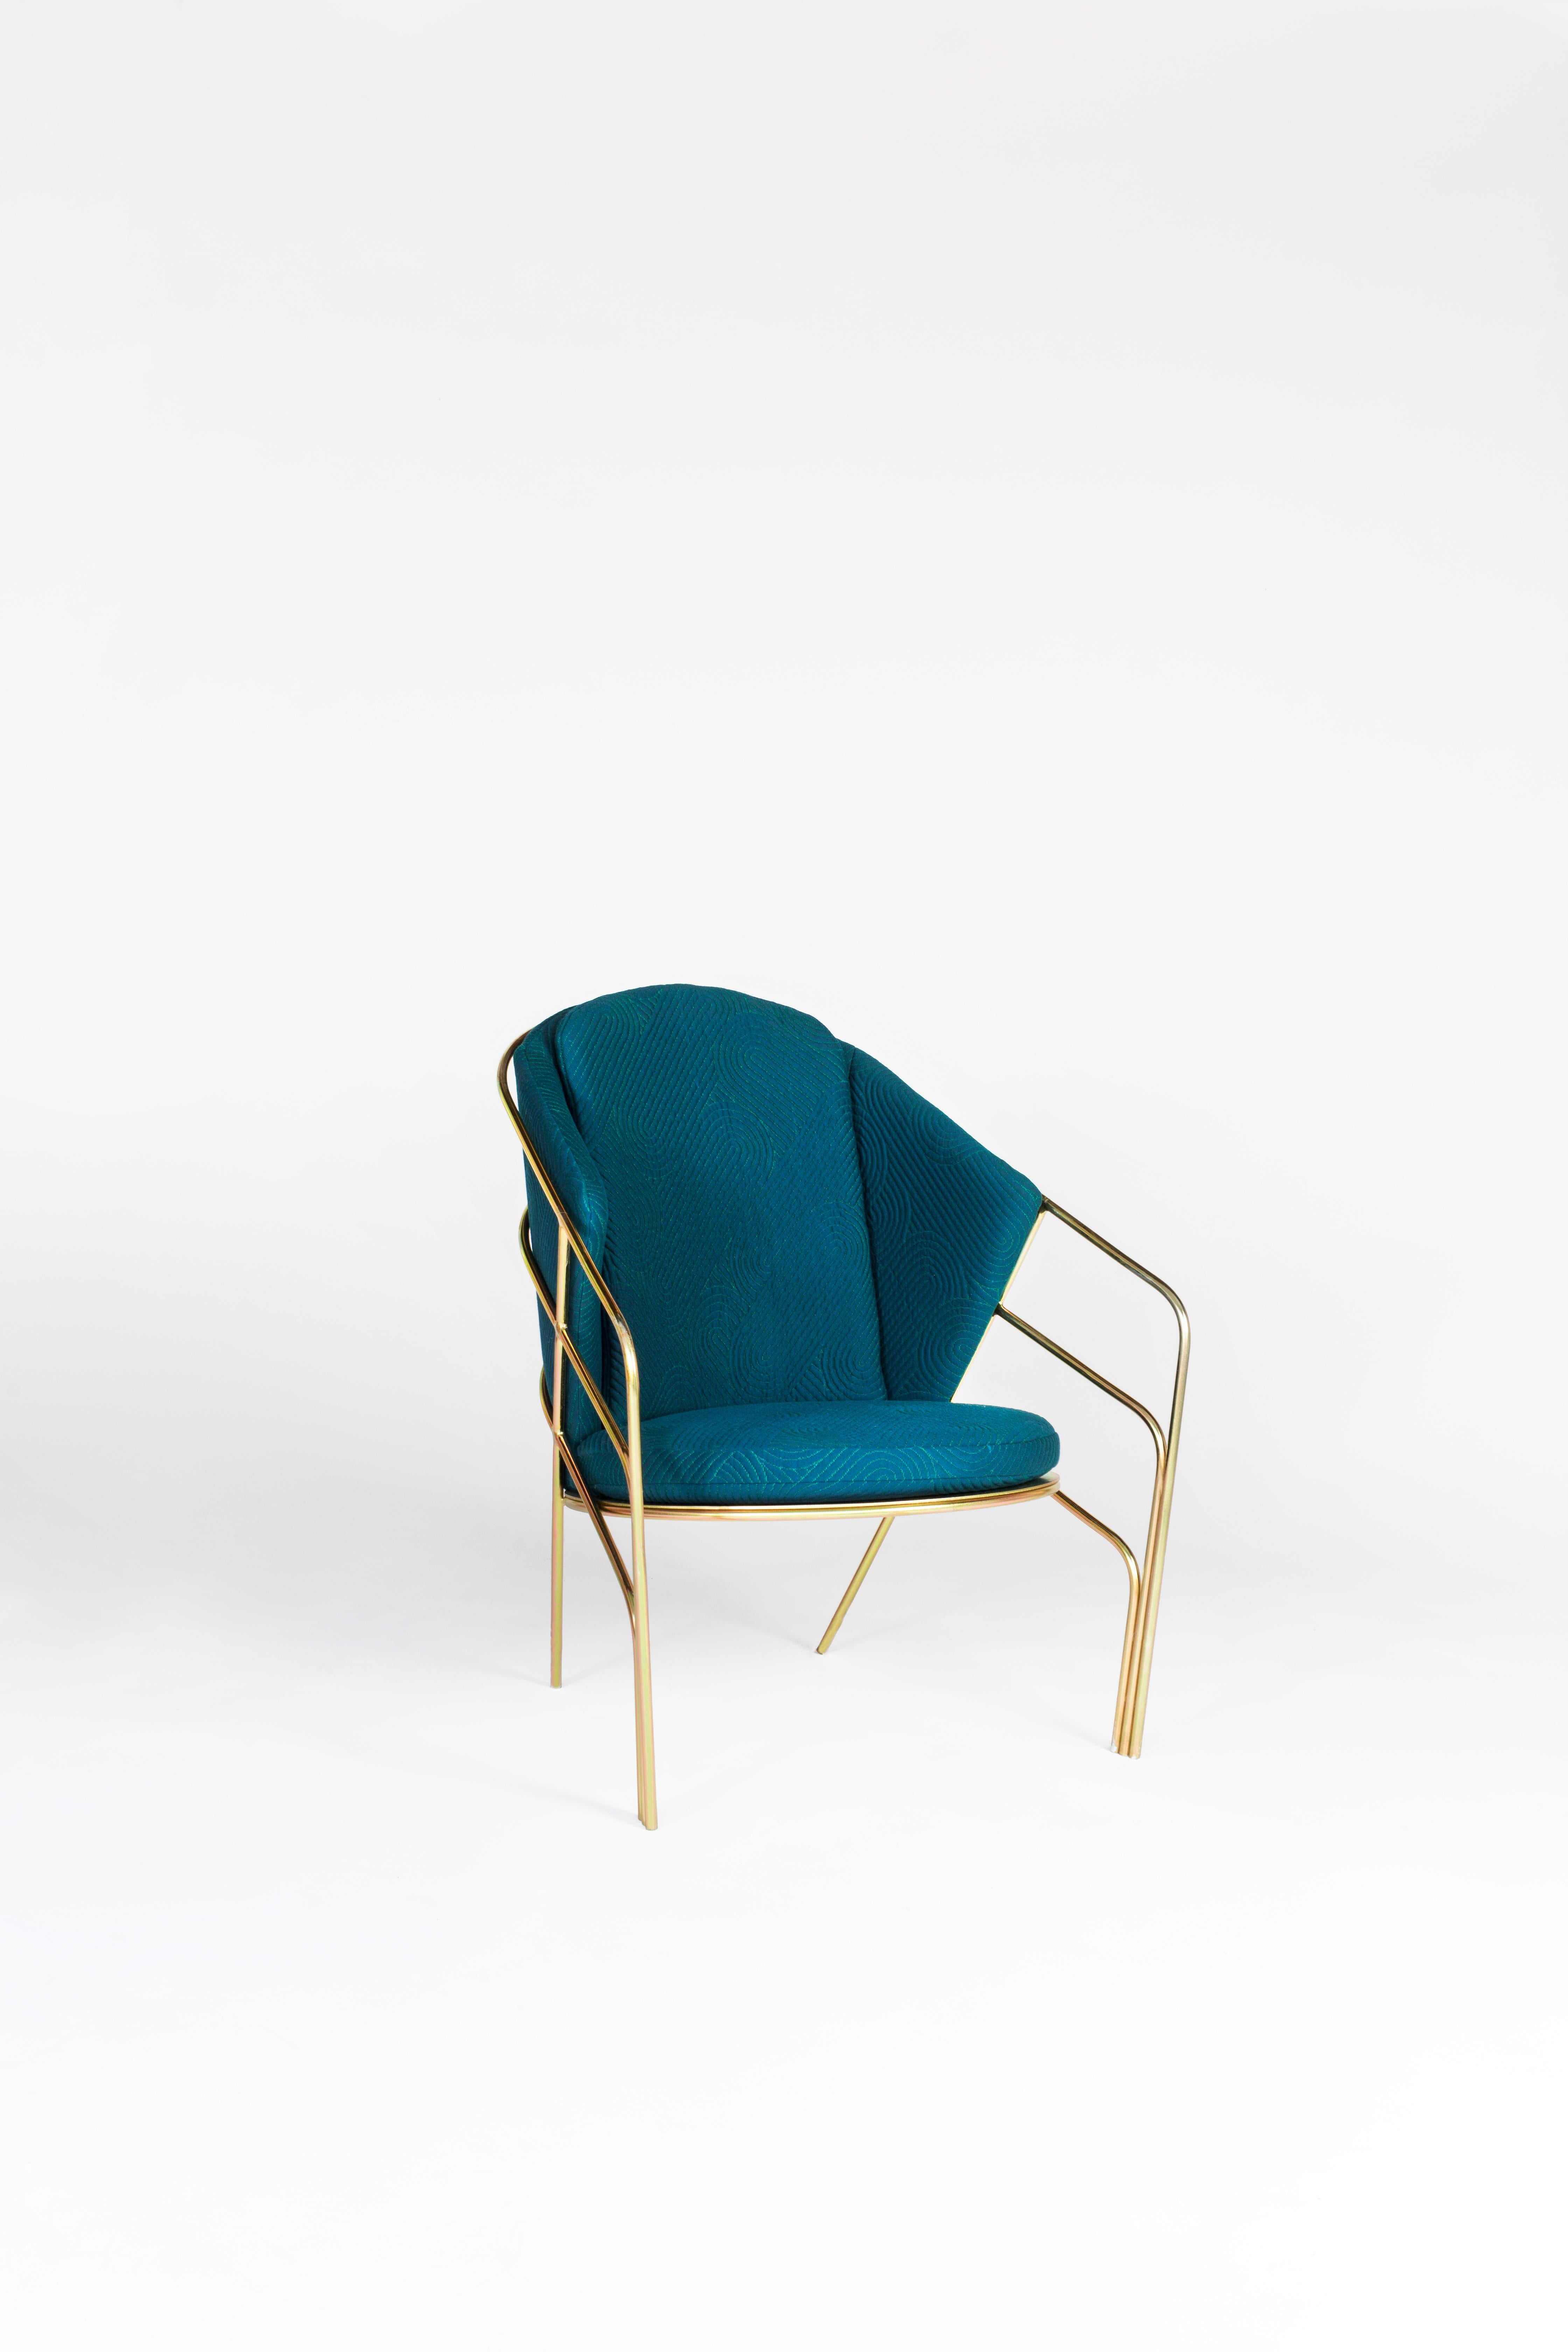 DeMILLE - Indoor/Outdoor Yellow Zinc Plated Stainless Steel Lounge Chair by  LAUN